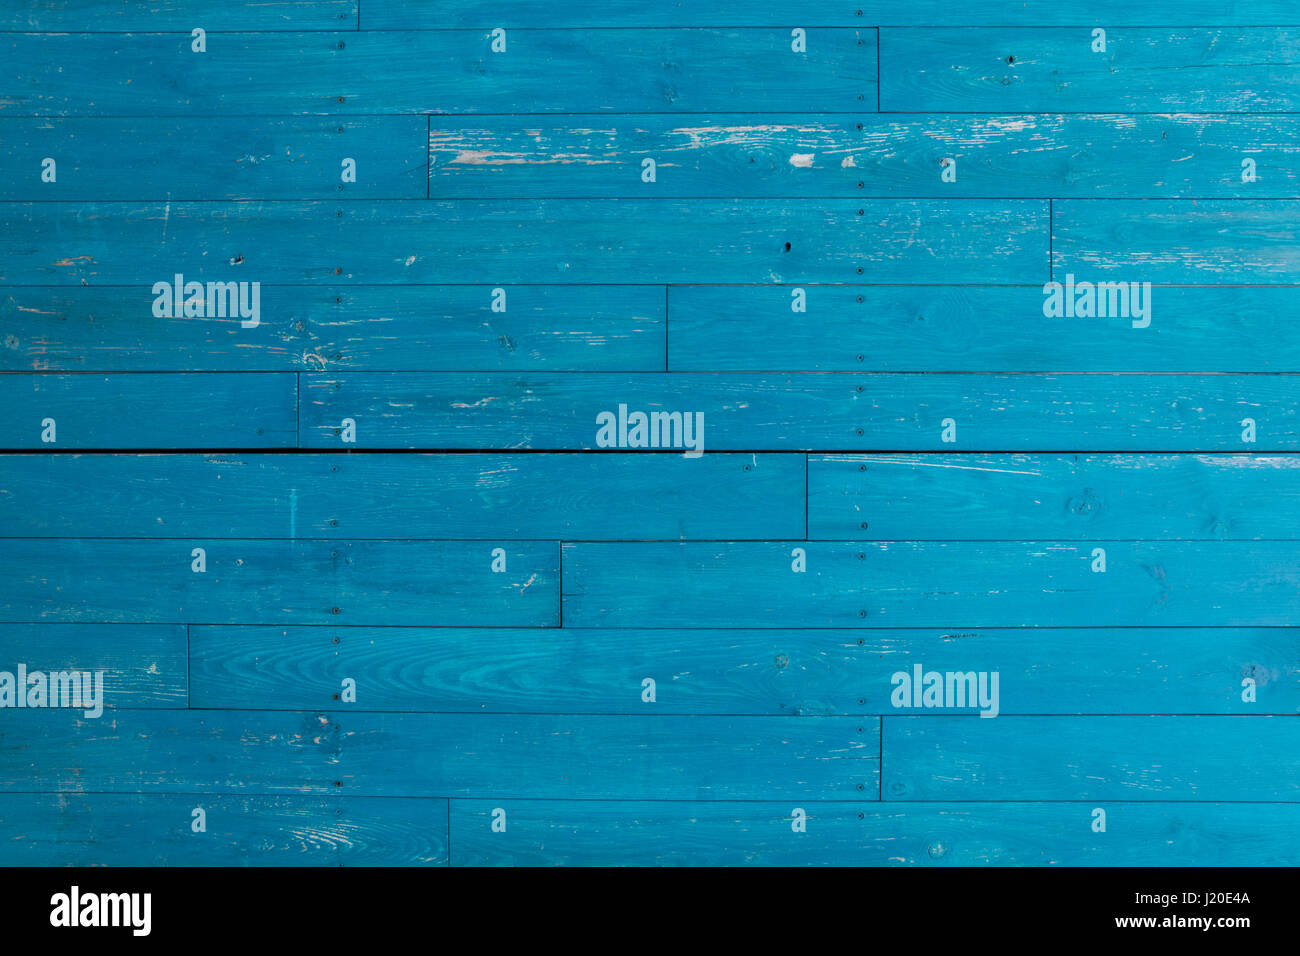 Blue or turquoise wooden planks - Stock Image